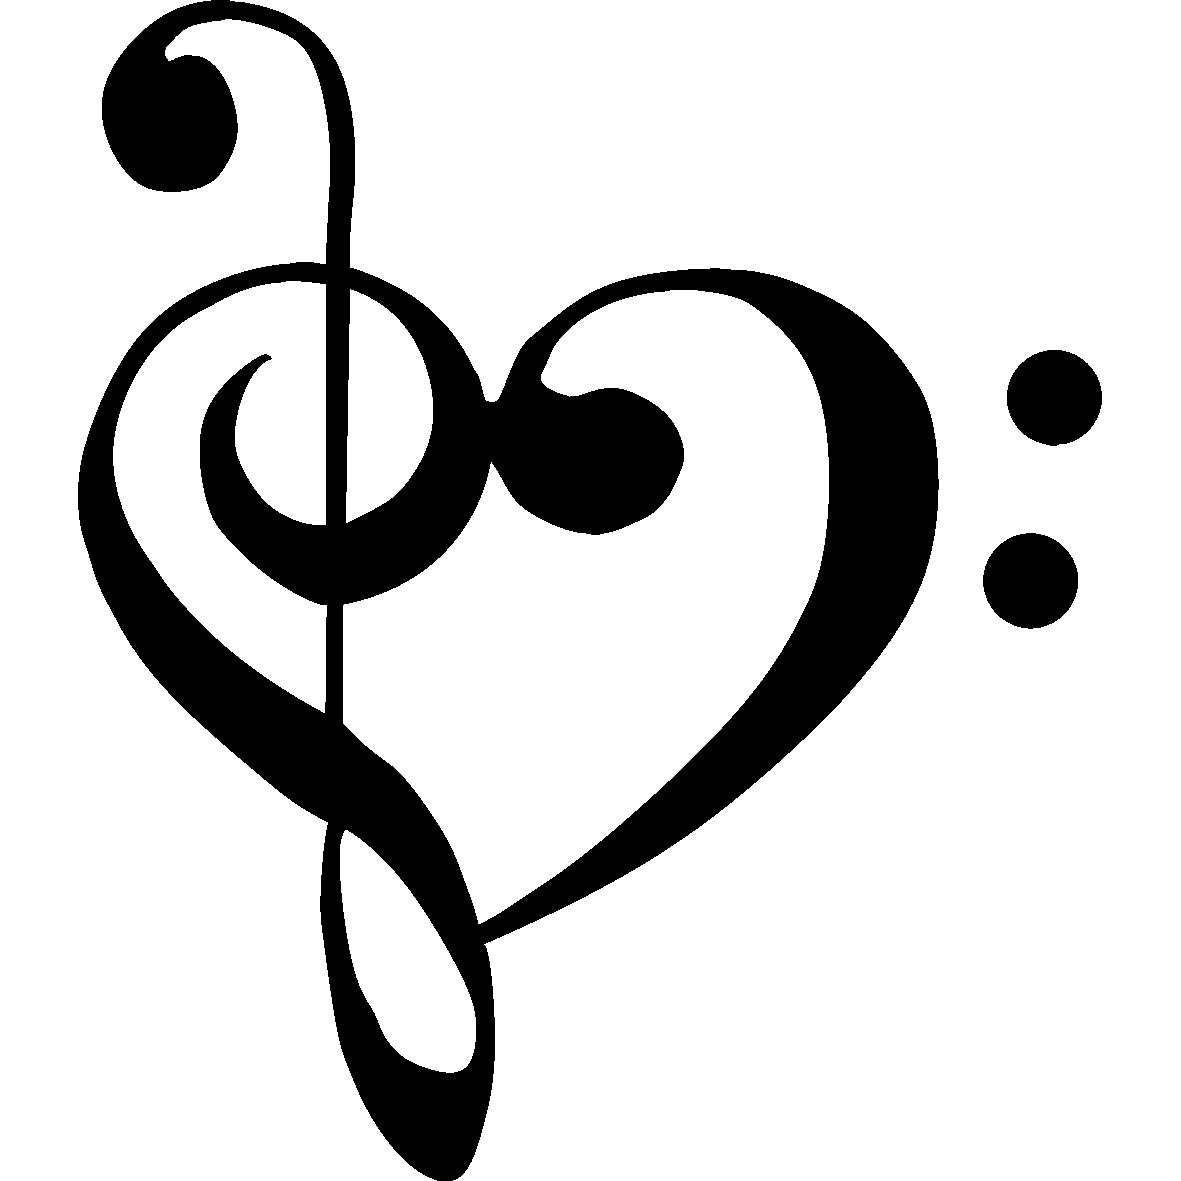 bass clef treble clef heart tattoo clipart best. Black Bedroom Furniture Sets. Home Design Ideas